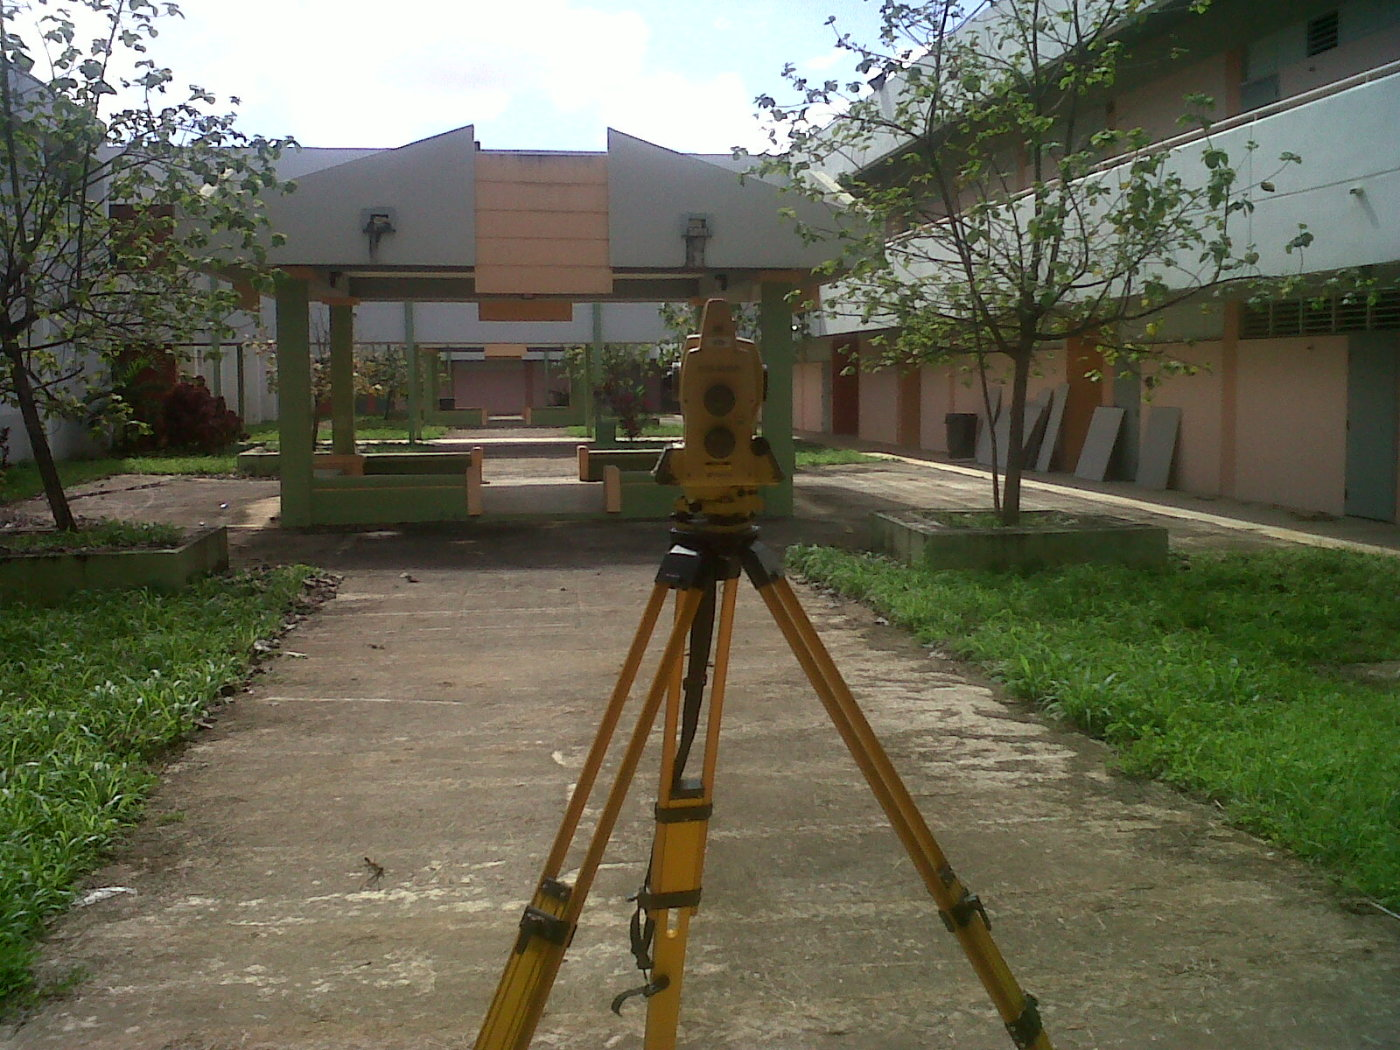 Still surveying a school for new storm sewer- 1